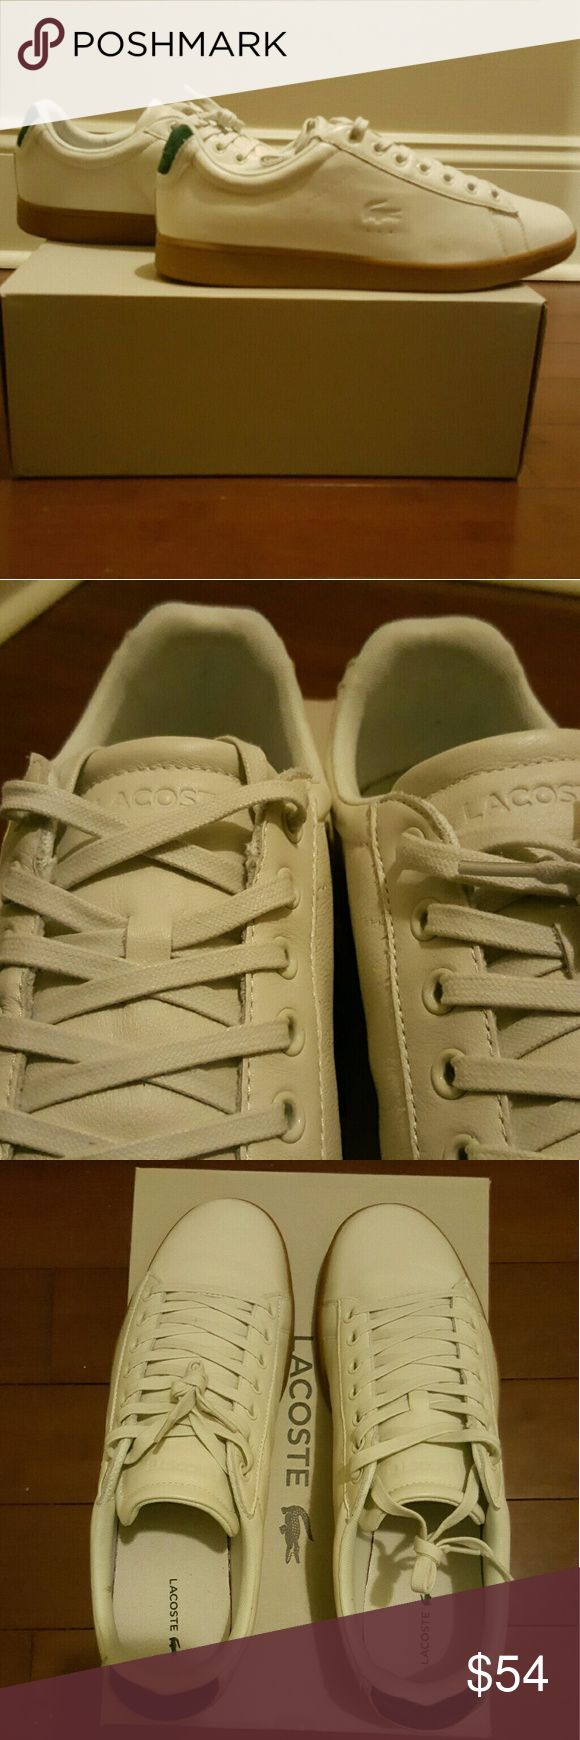 Lacoste Carnaby Evo 5 Leather  Size 11 Off-White Cool Summer shoes, brand new Lacoste Sneakers Soft Leather Off-White size 11 with gum bottom. Wear this with casual or street attire.  Item will be shipped double boxed.  ALL SALES ARE FINAL!!! Lacoste Shoes Sneakers